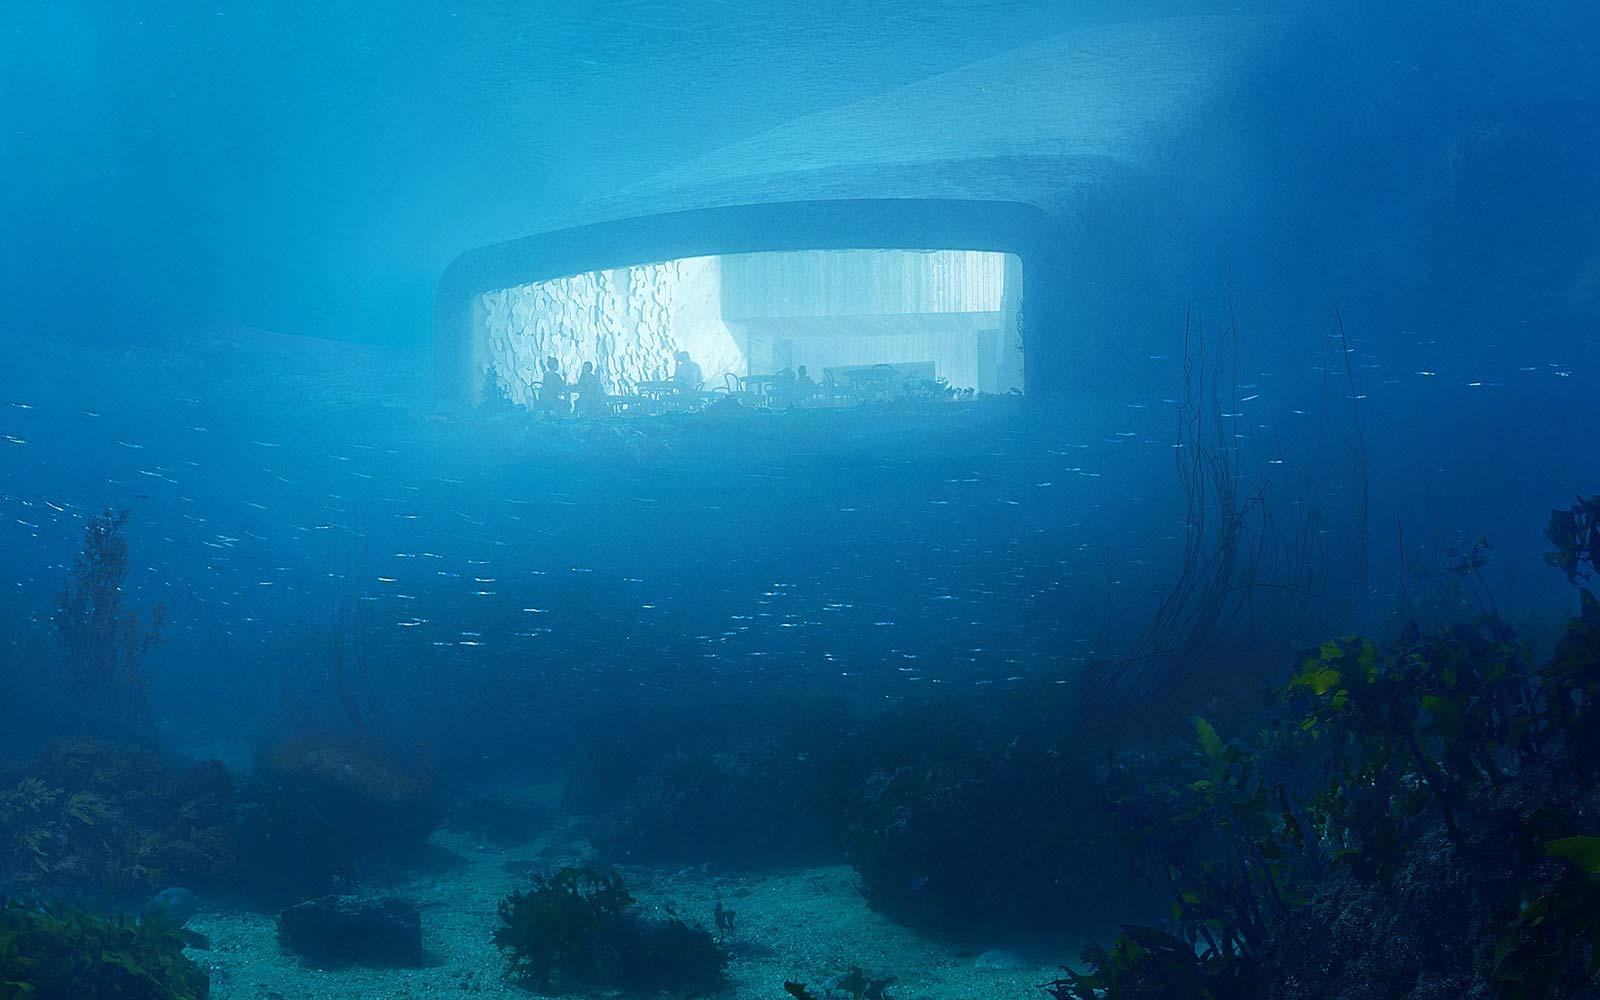 Europe's First Underwater Restaurant Has a Champagne Bar and Looks Like a Whale